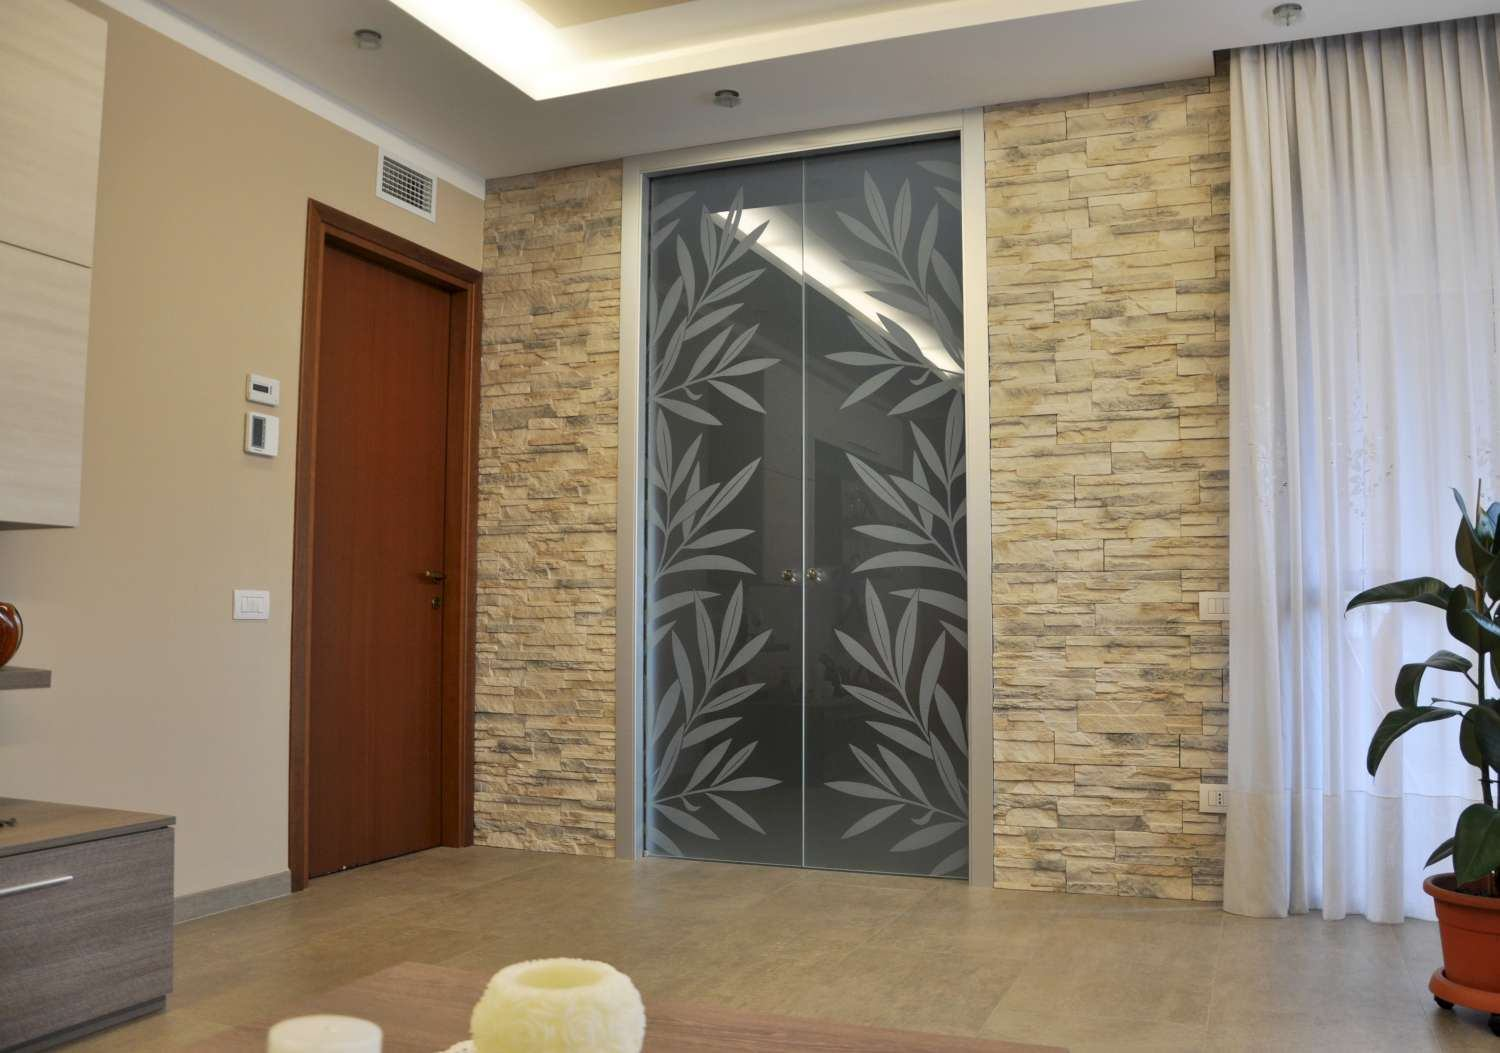 Mazzoli glass doors various types of doors and sliding glass doors doppia porta vetro acidato decoro kenzia laterale effetto traslucido scorrevole a scomparsa stipite fly alluminio 4 double sliding door etched glass eventelaan Images